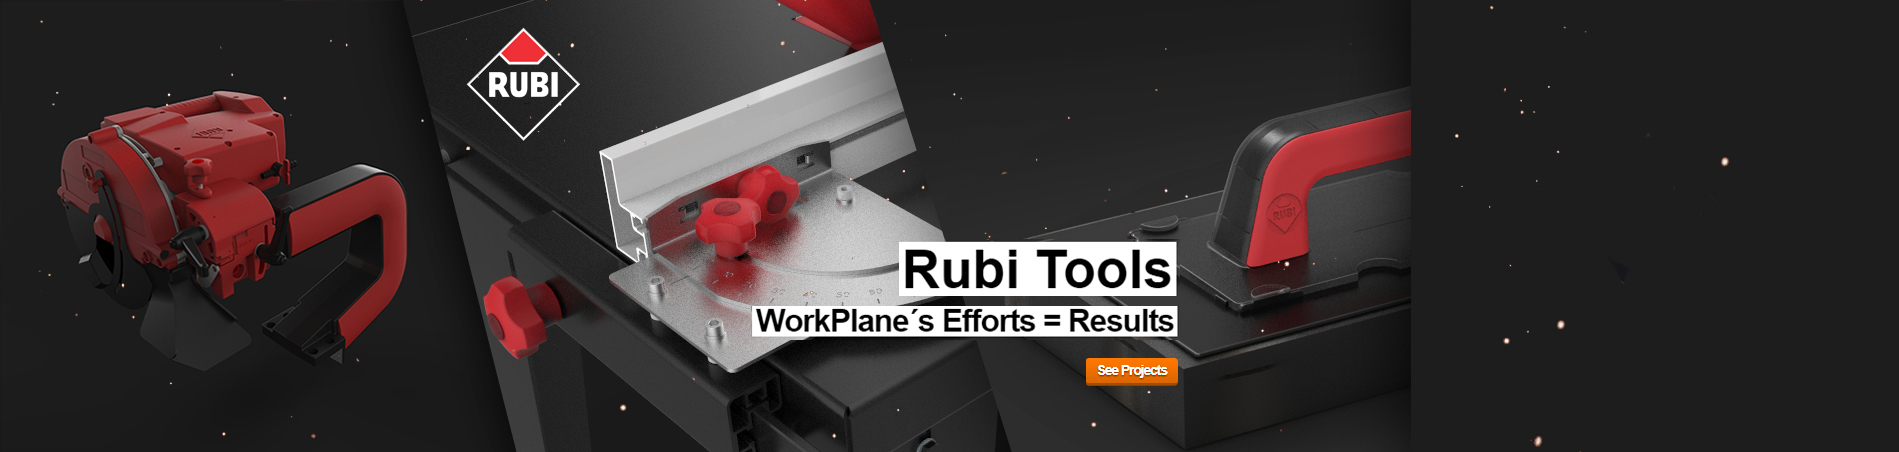 RUBI-with-sparks3a